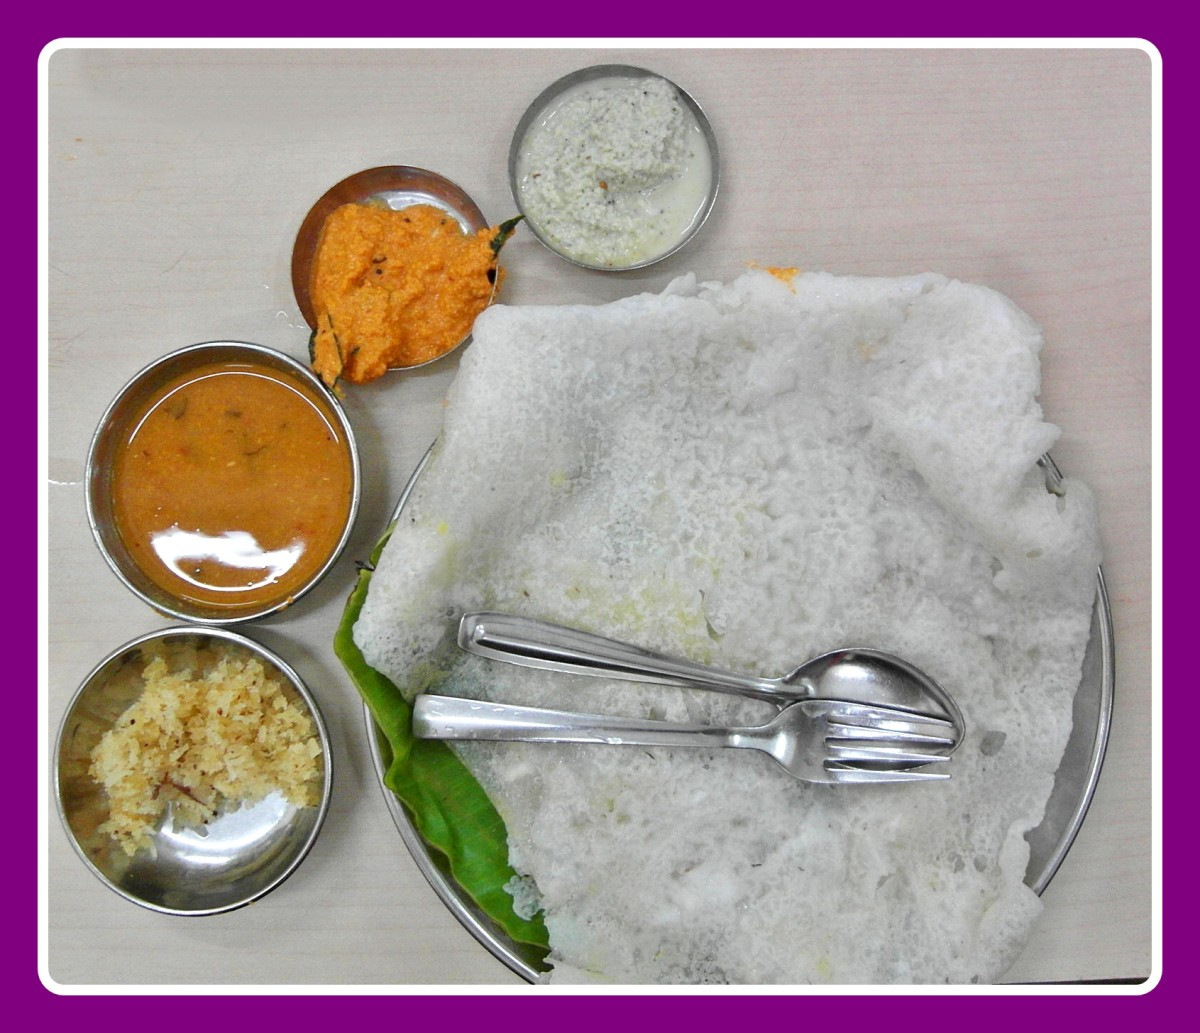 5 simple rules on how to eat safe when travelling in India